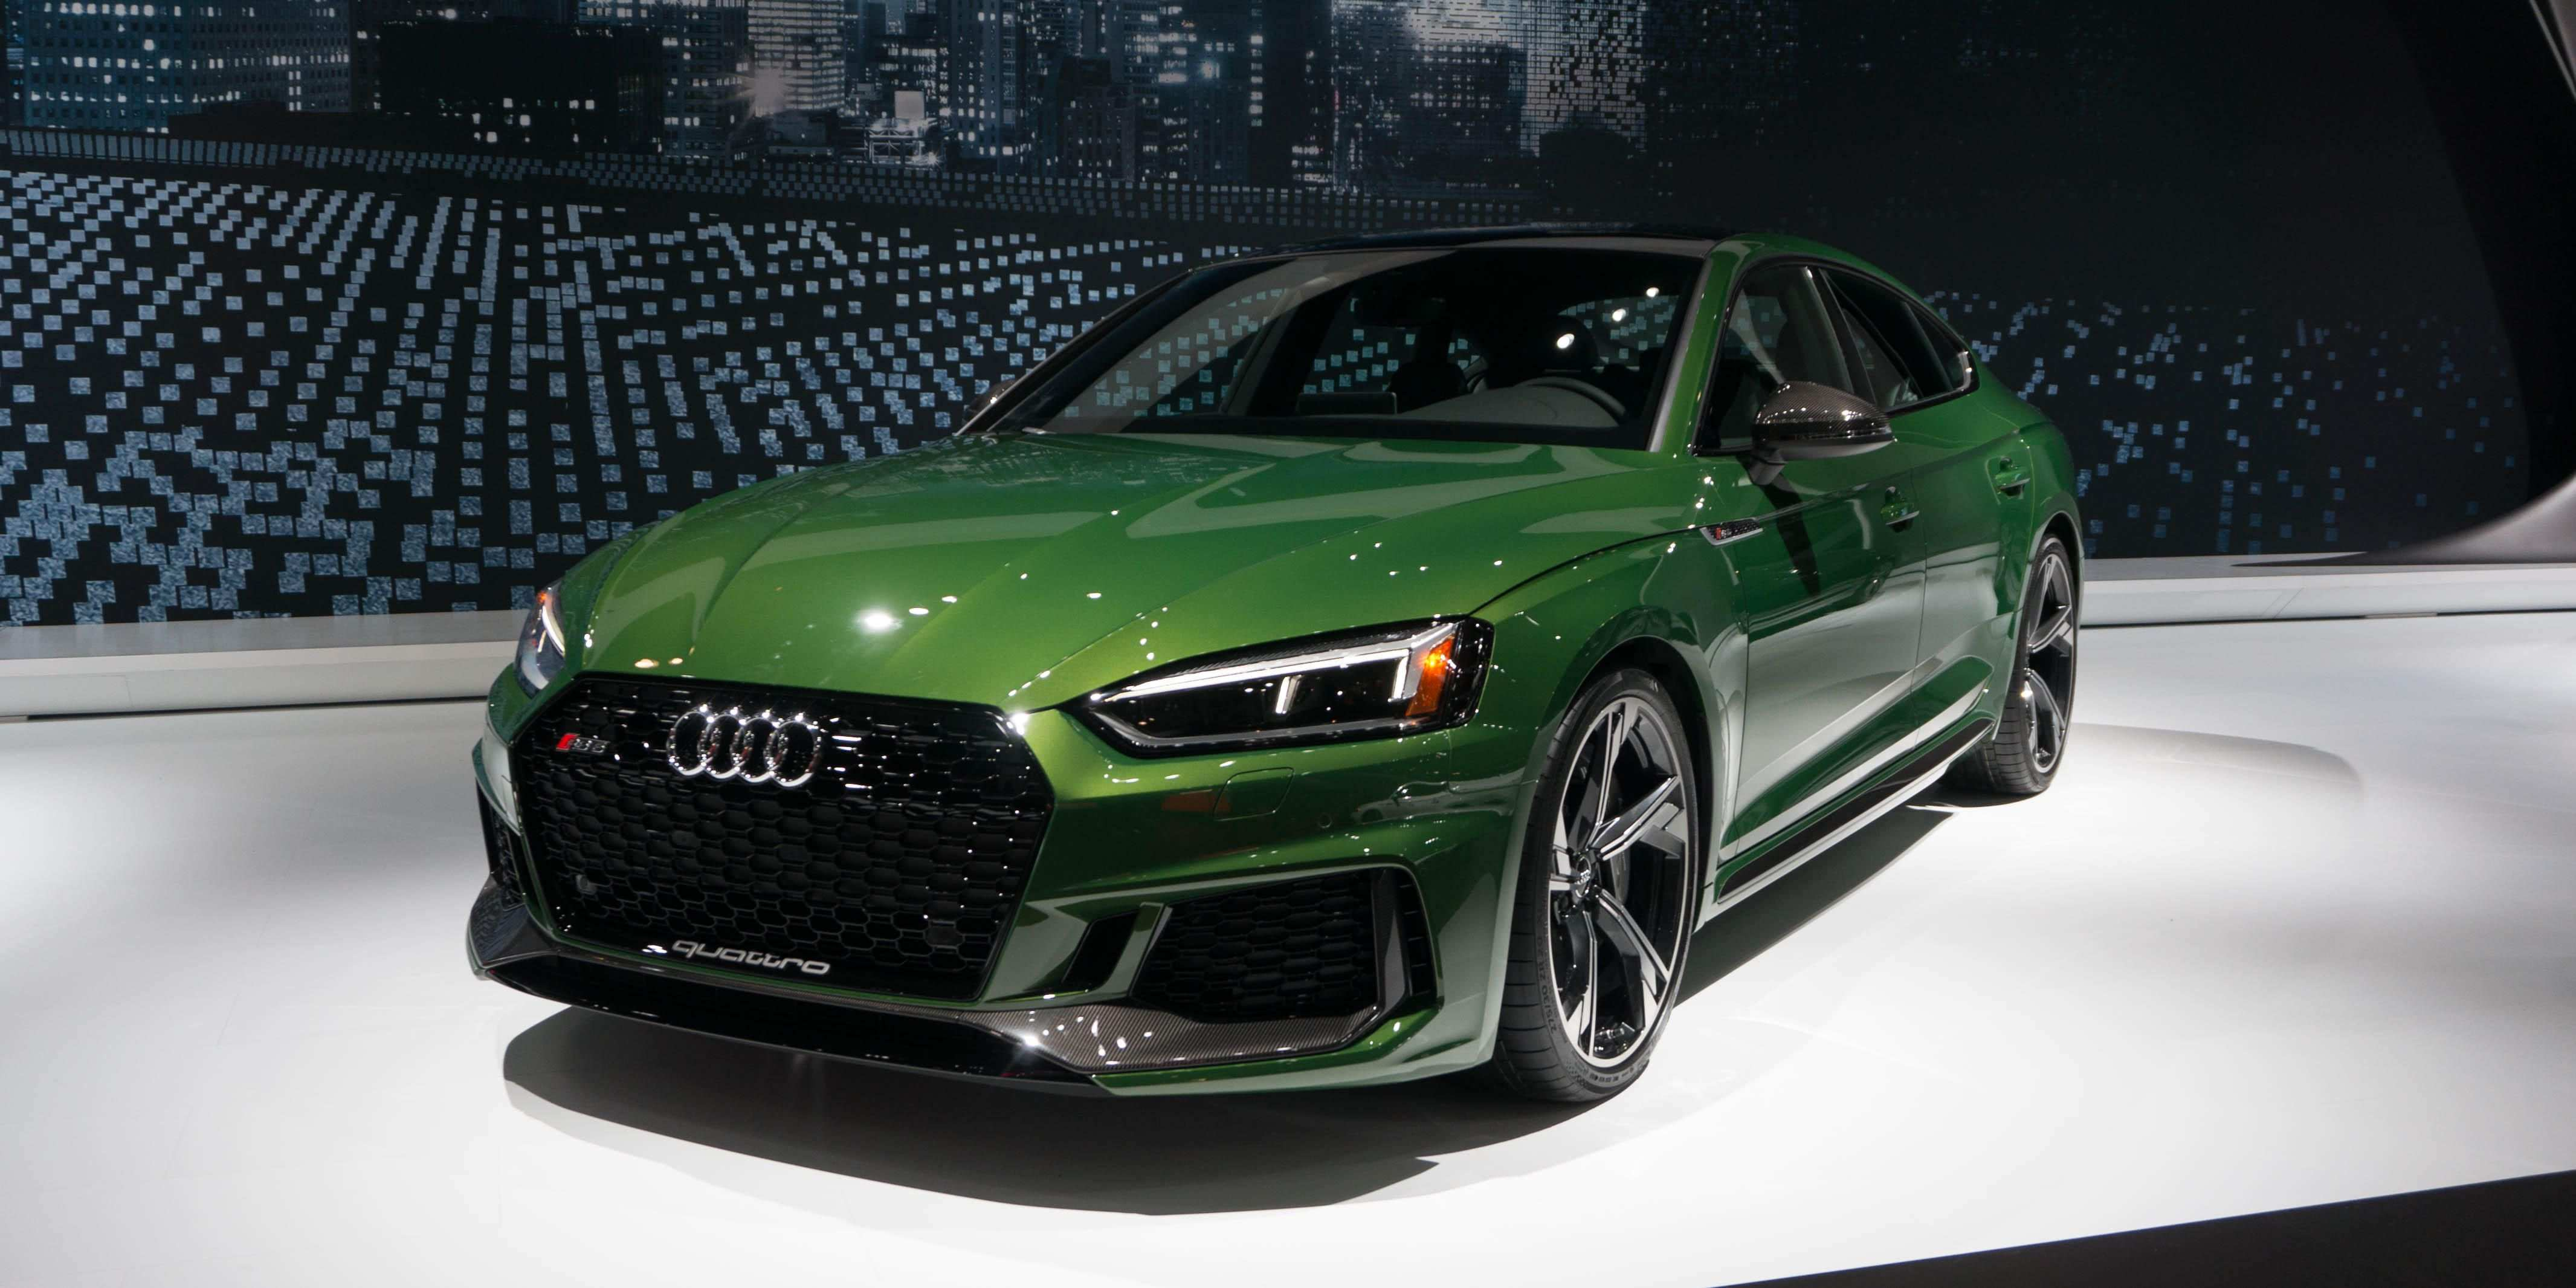 82 Gallery of 2019 Audi Rs5 Release Date Usa Rumors for 2019 Audi Rs5 Release Date Usa